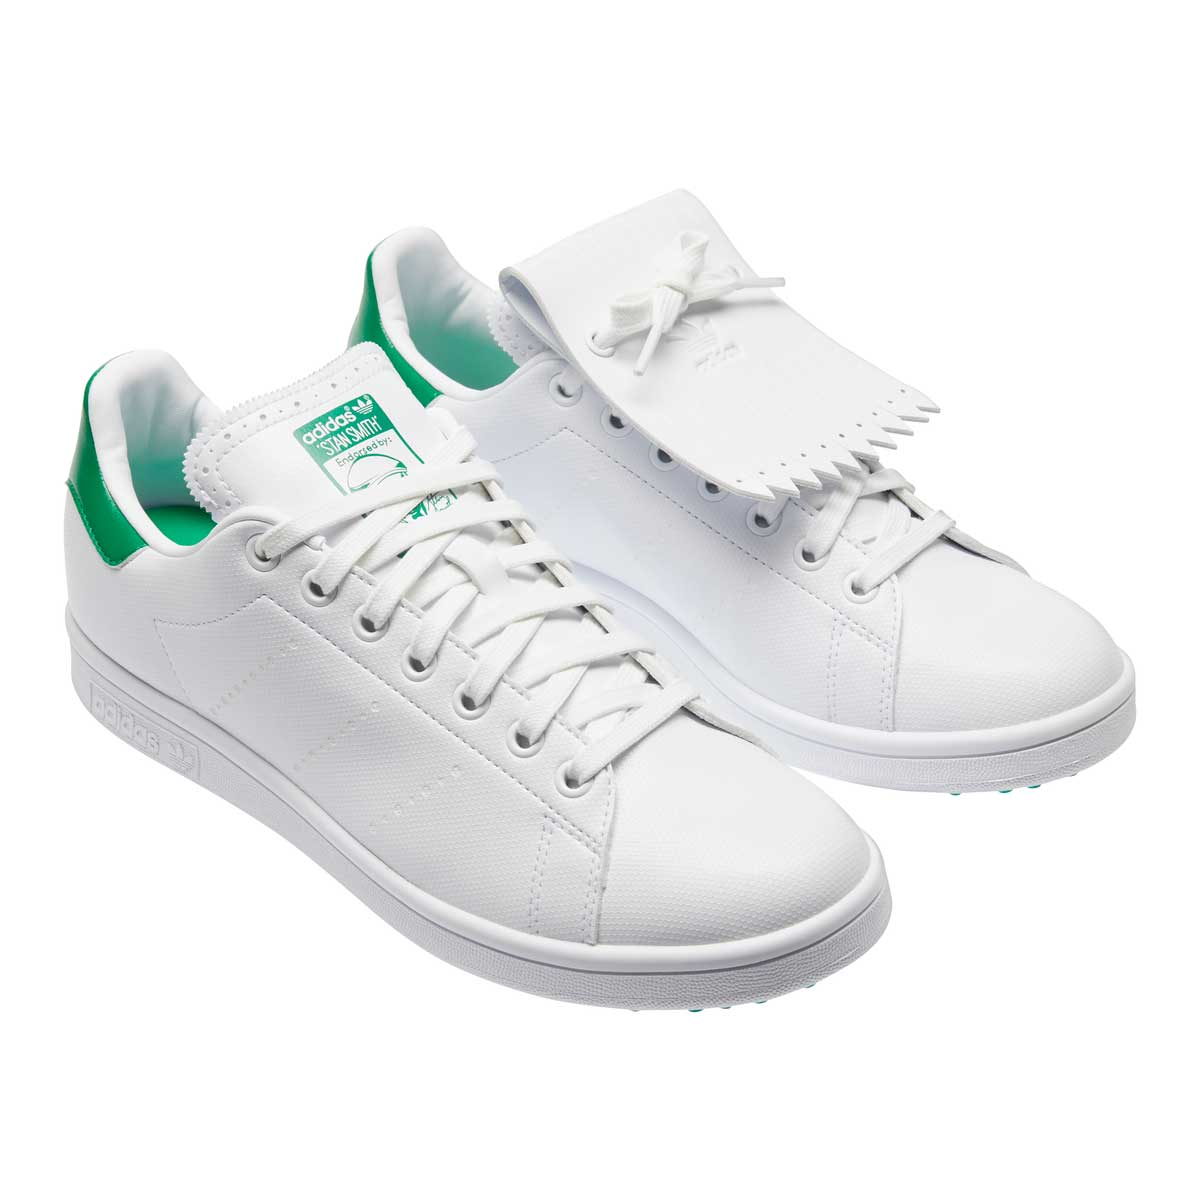 Adidas Men's Stan Smith Wite/Green Spikeless Golf Shoes